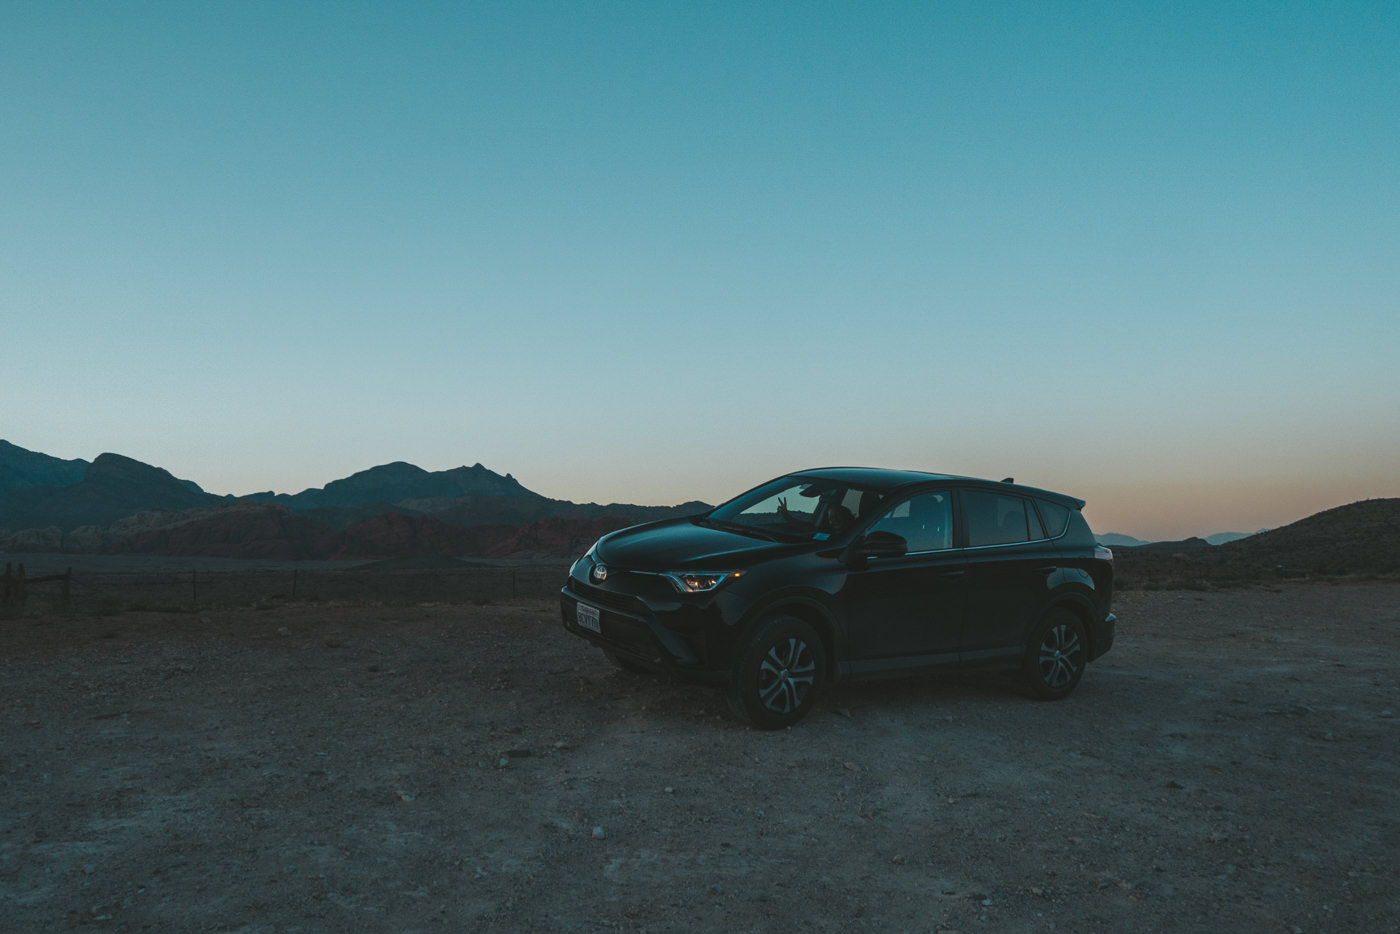 Unser Mietauto am Red Rock Canyon